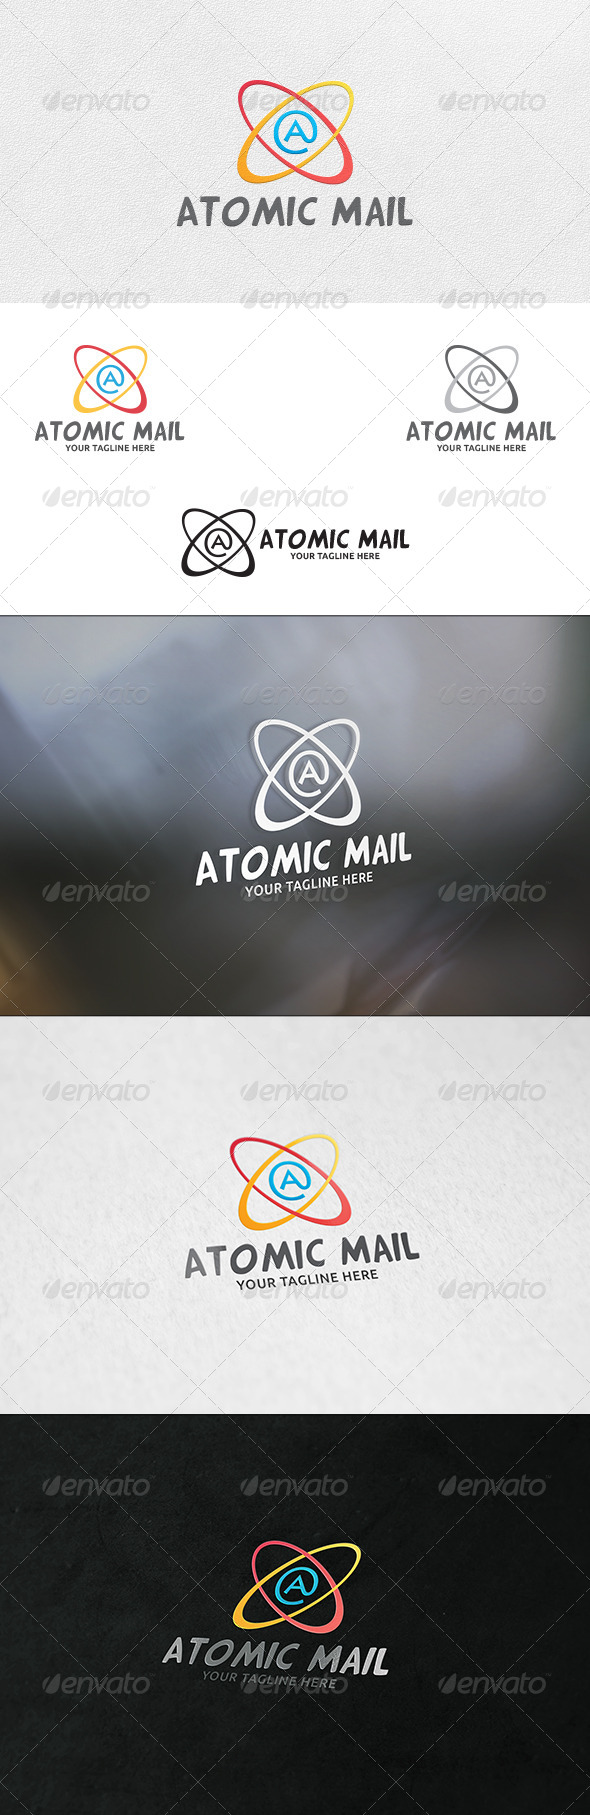 GraphicRiver Atomic Mail Logo Template 7071441